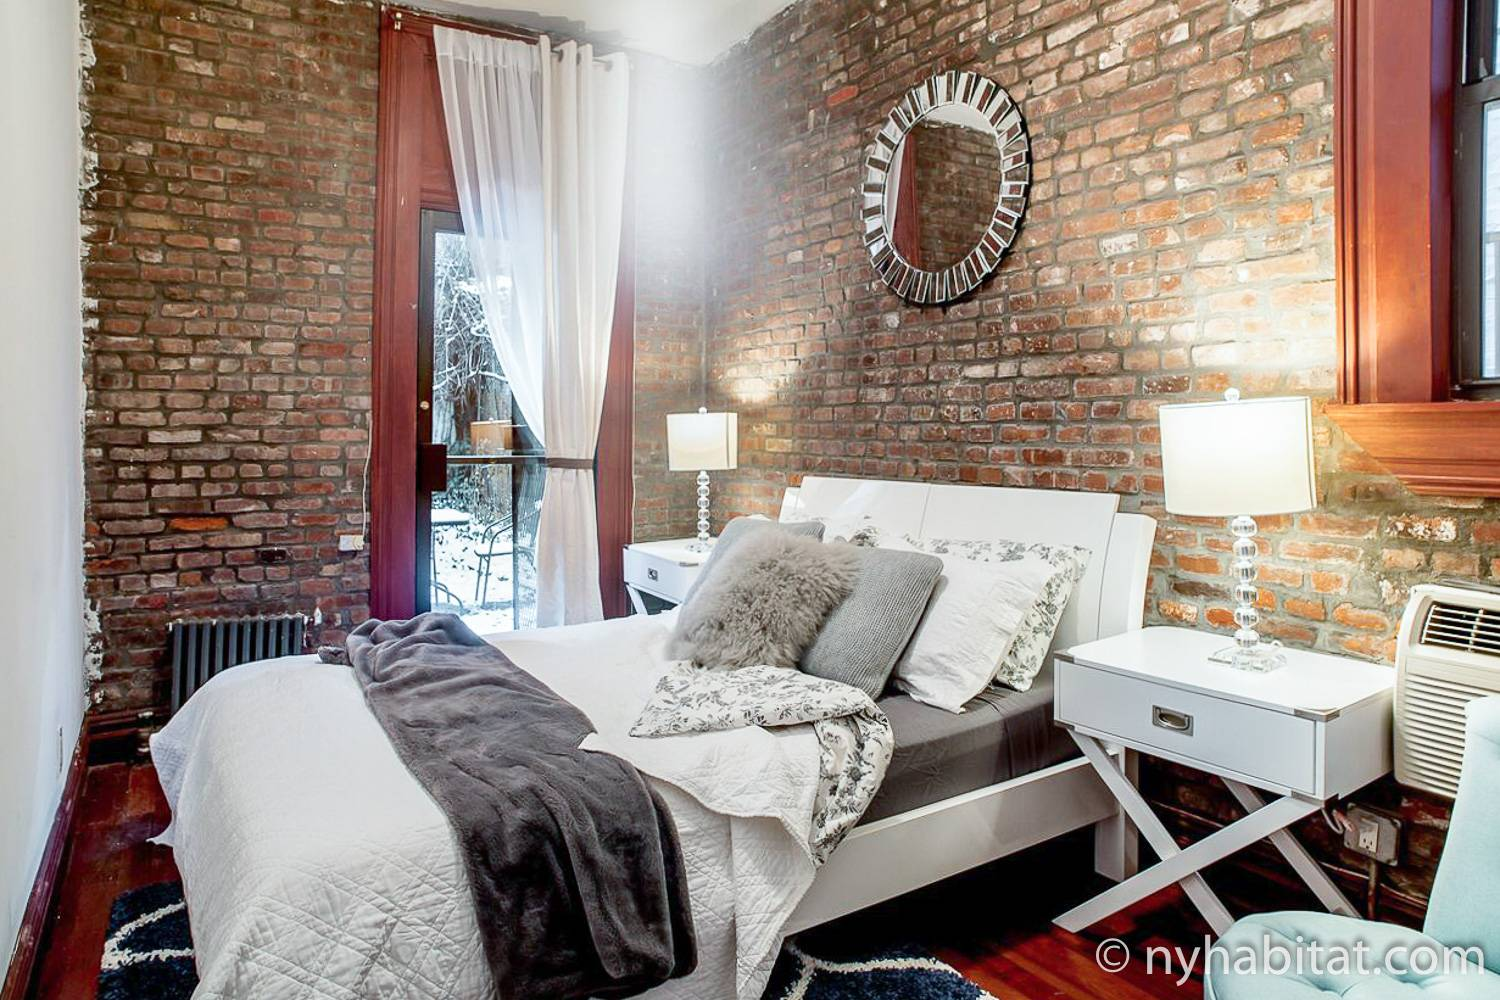 Image of bedroom in NY-16546 with queen-sized bed, mirror and back door